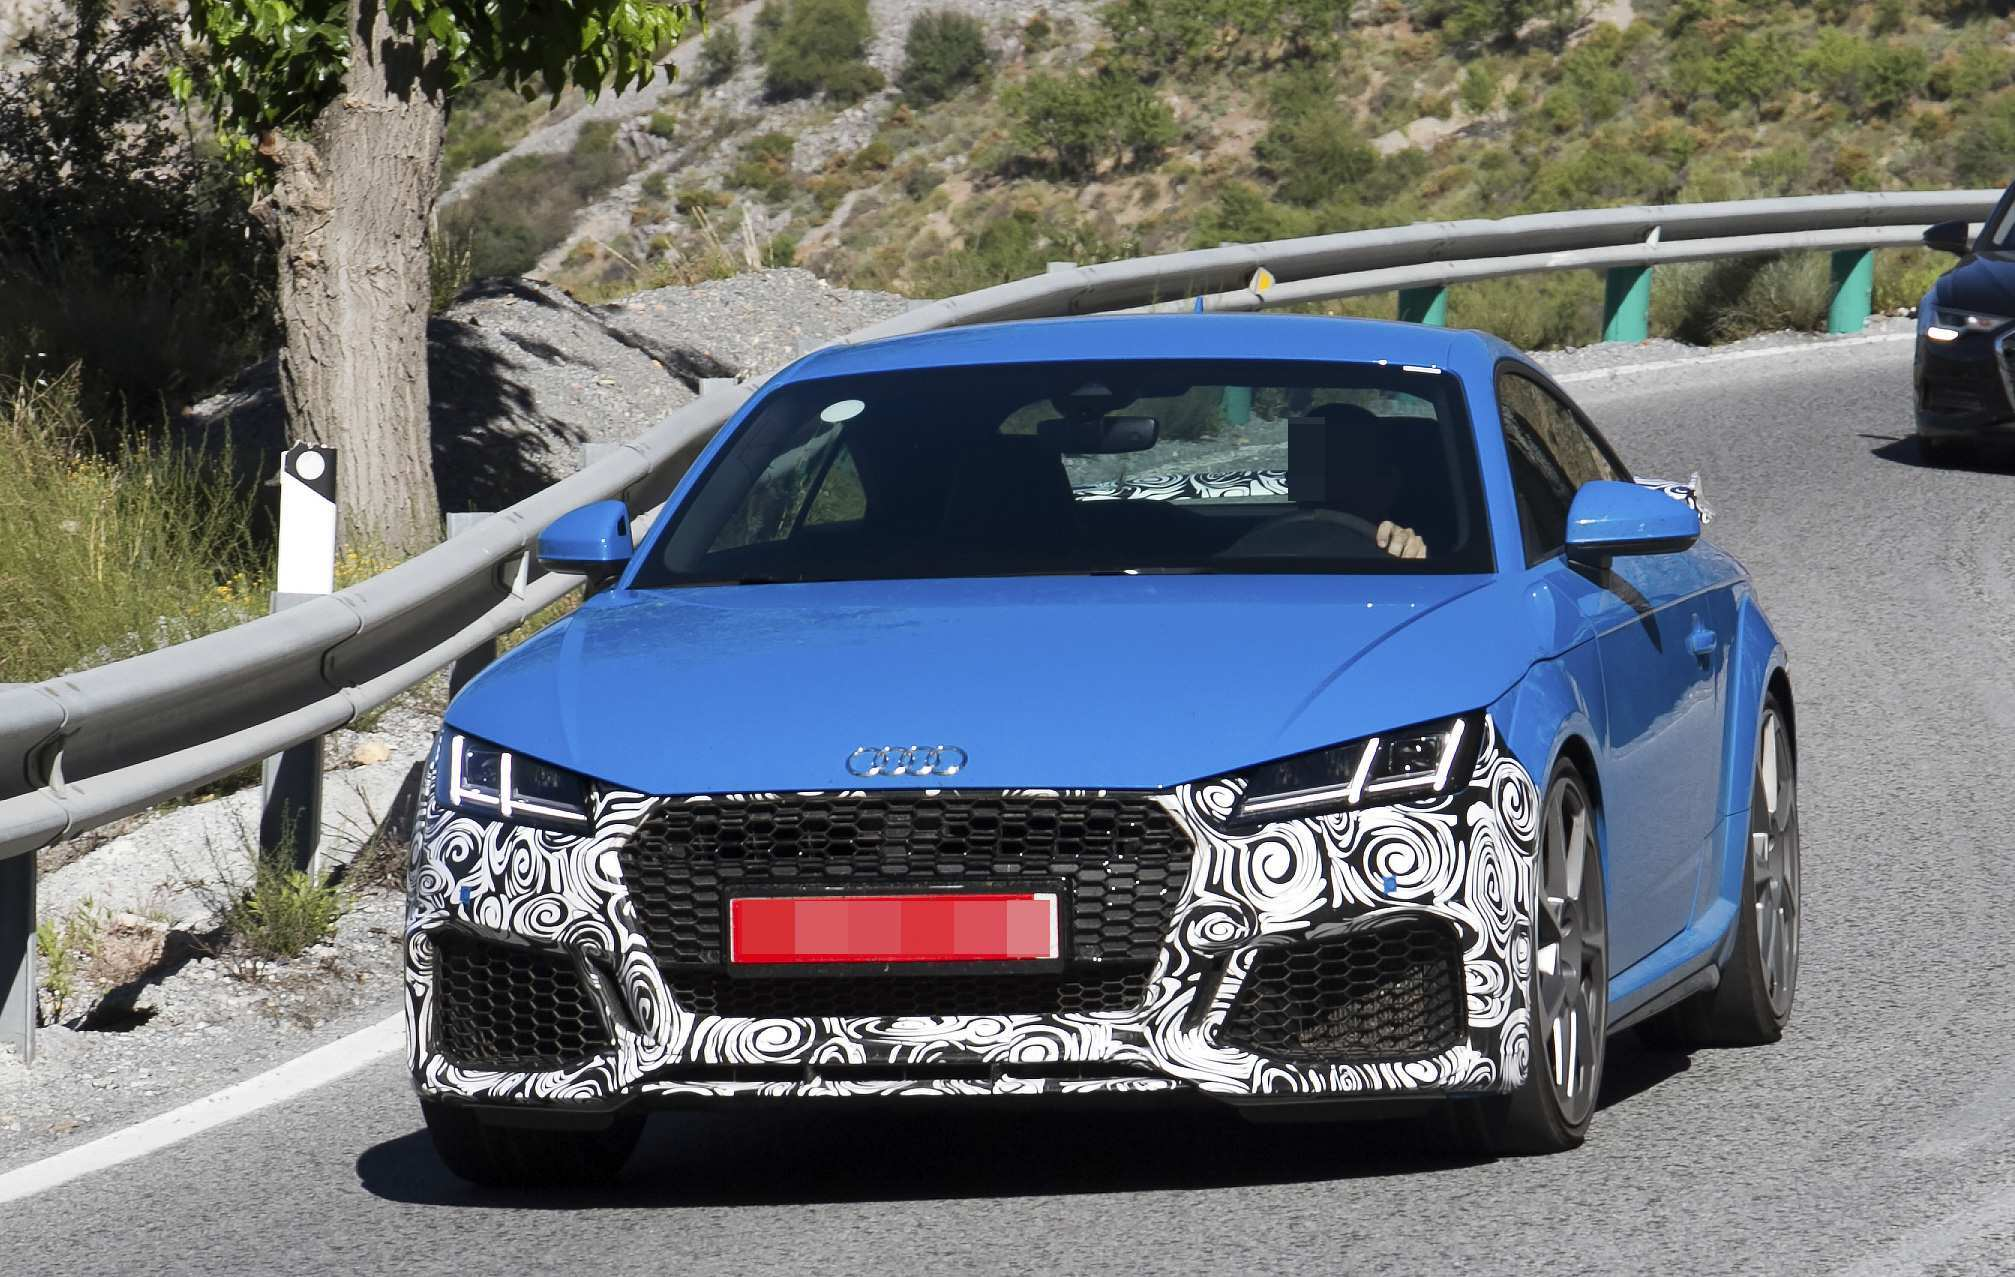 17 New New Audi Tt Rs Plus 2019 Price And Review History for New Audi Tt Rs Plus 2019 Price And Review